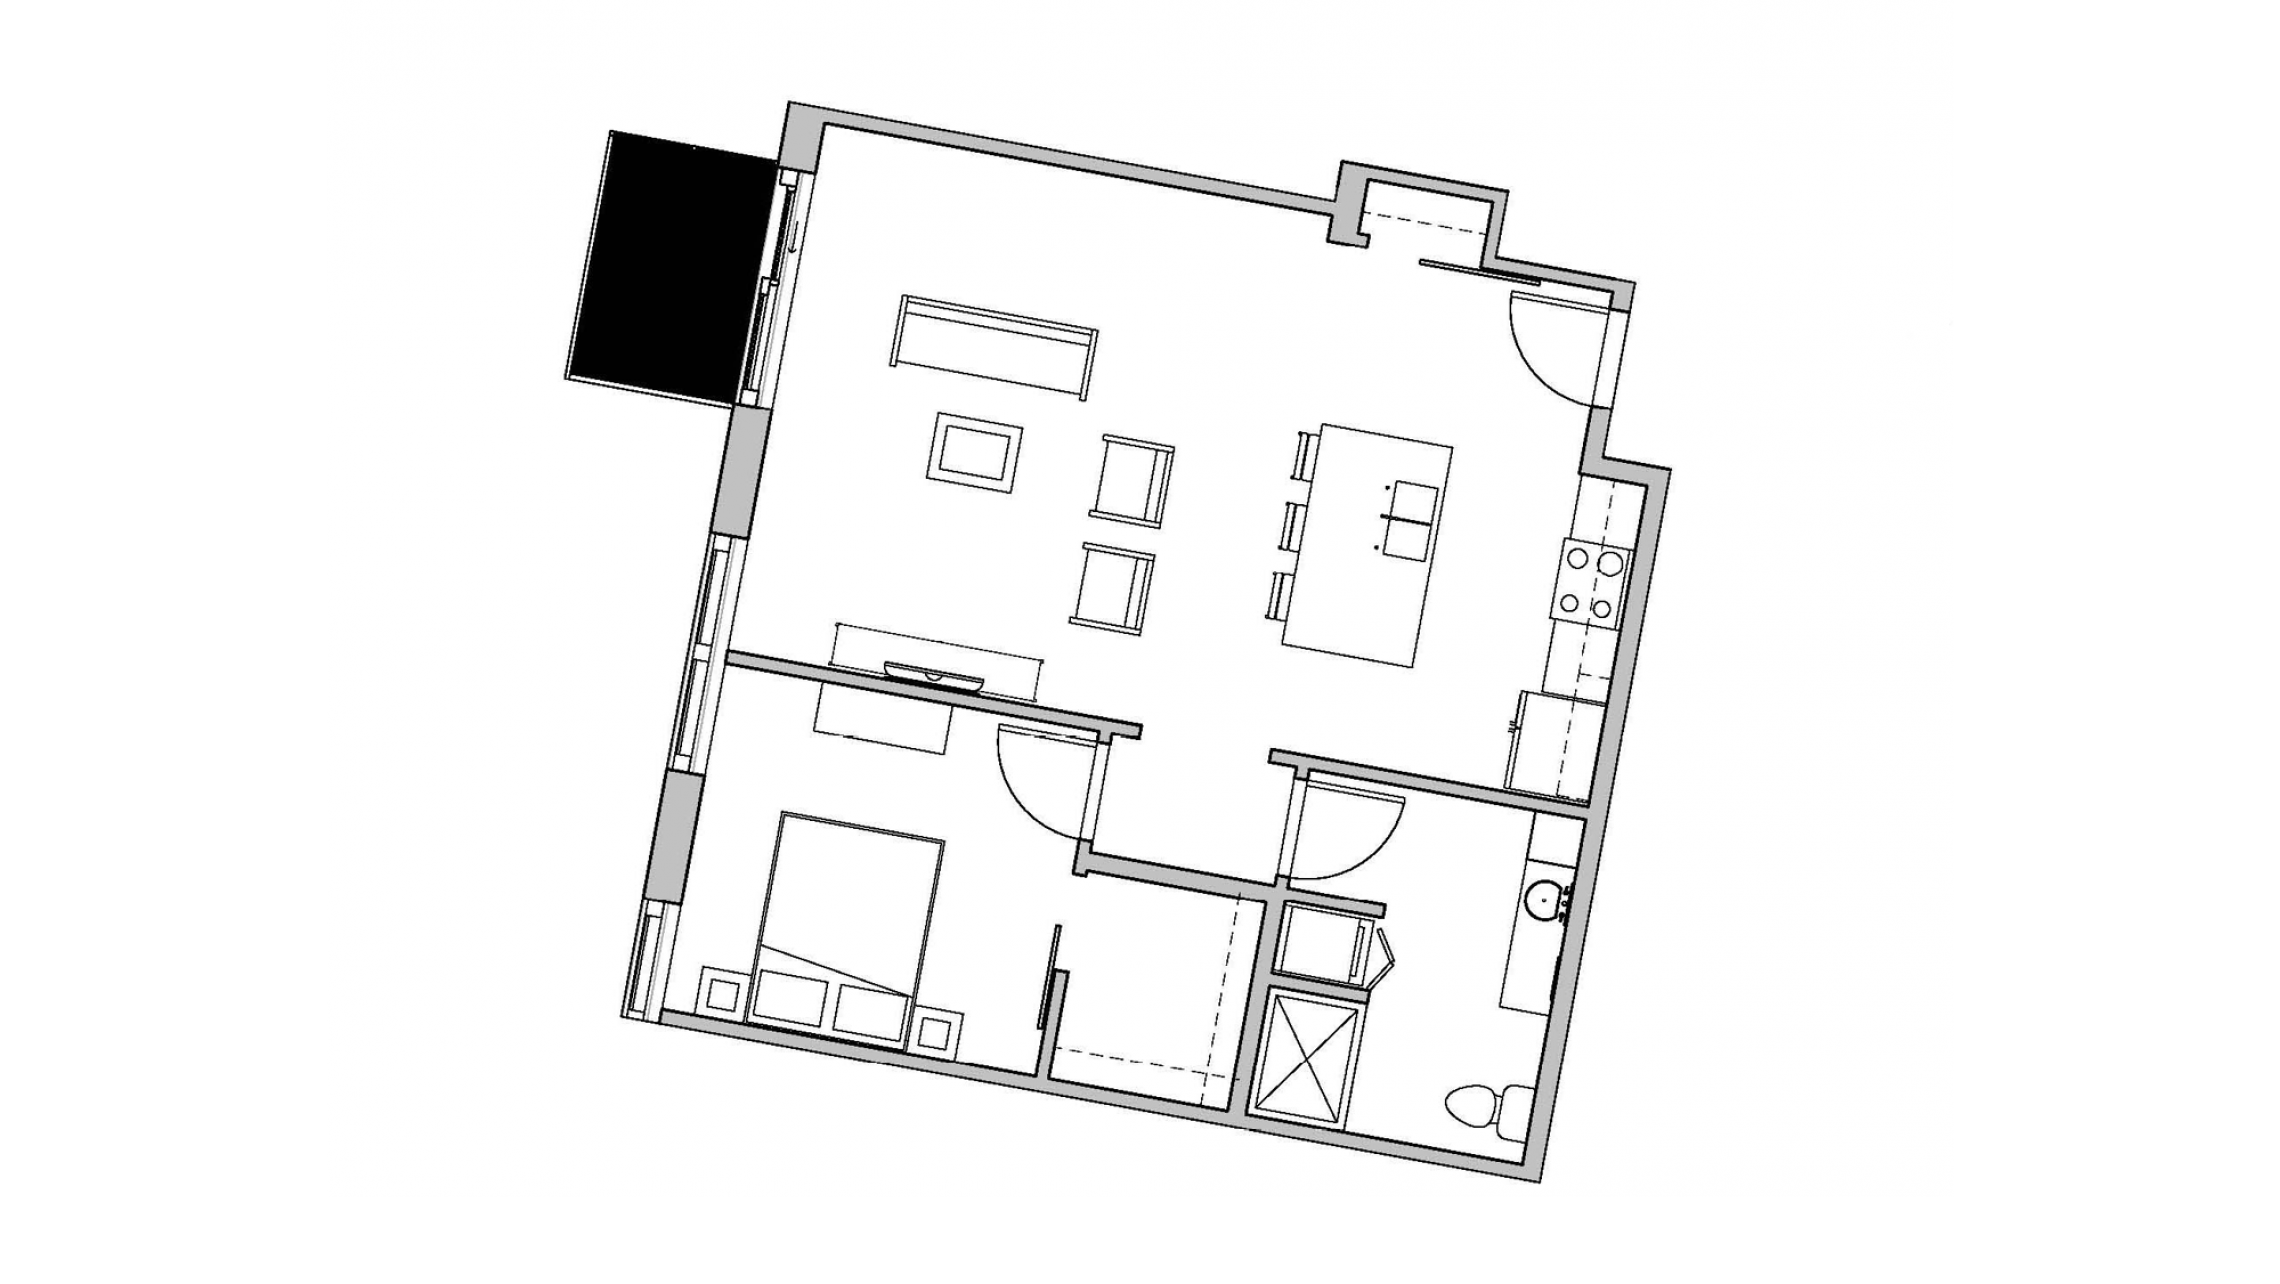 ULI Seven27 228 - One Bedroom, One Bathroom